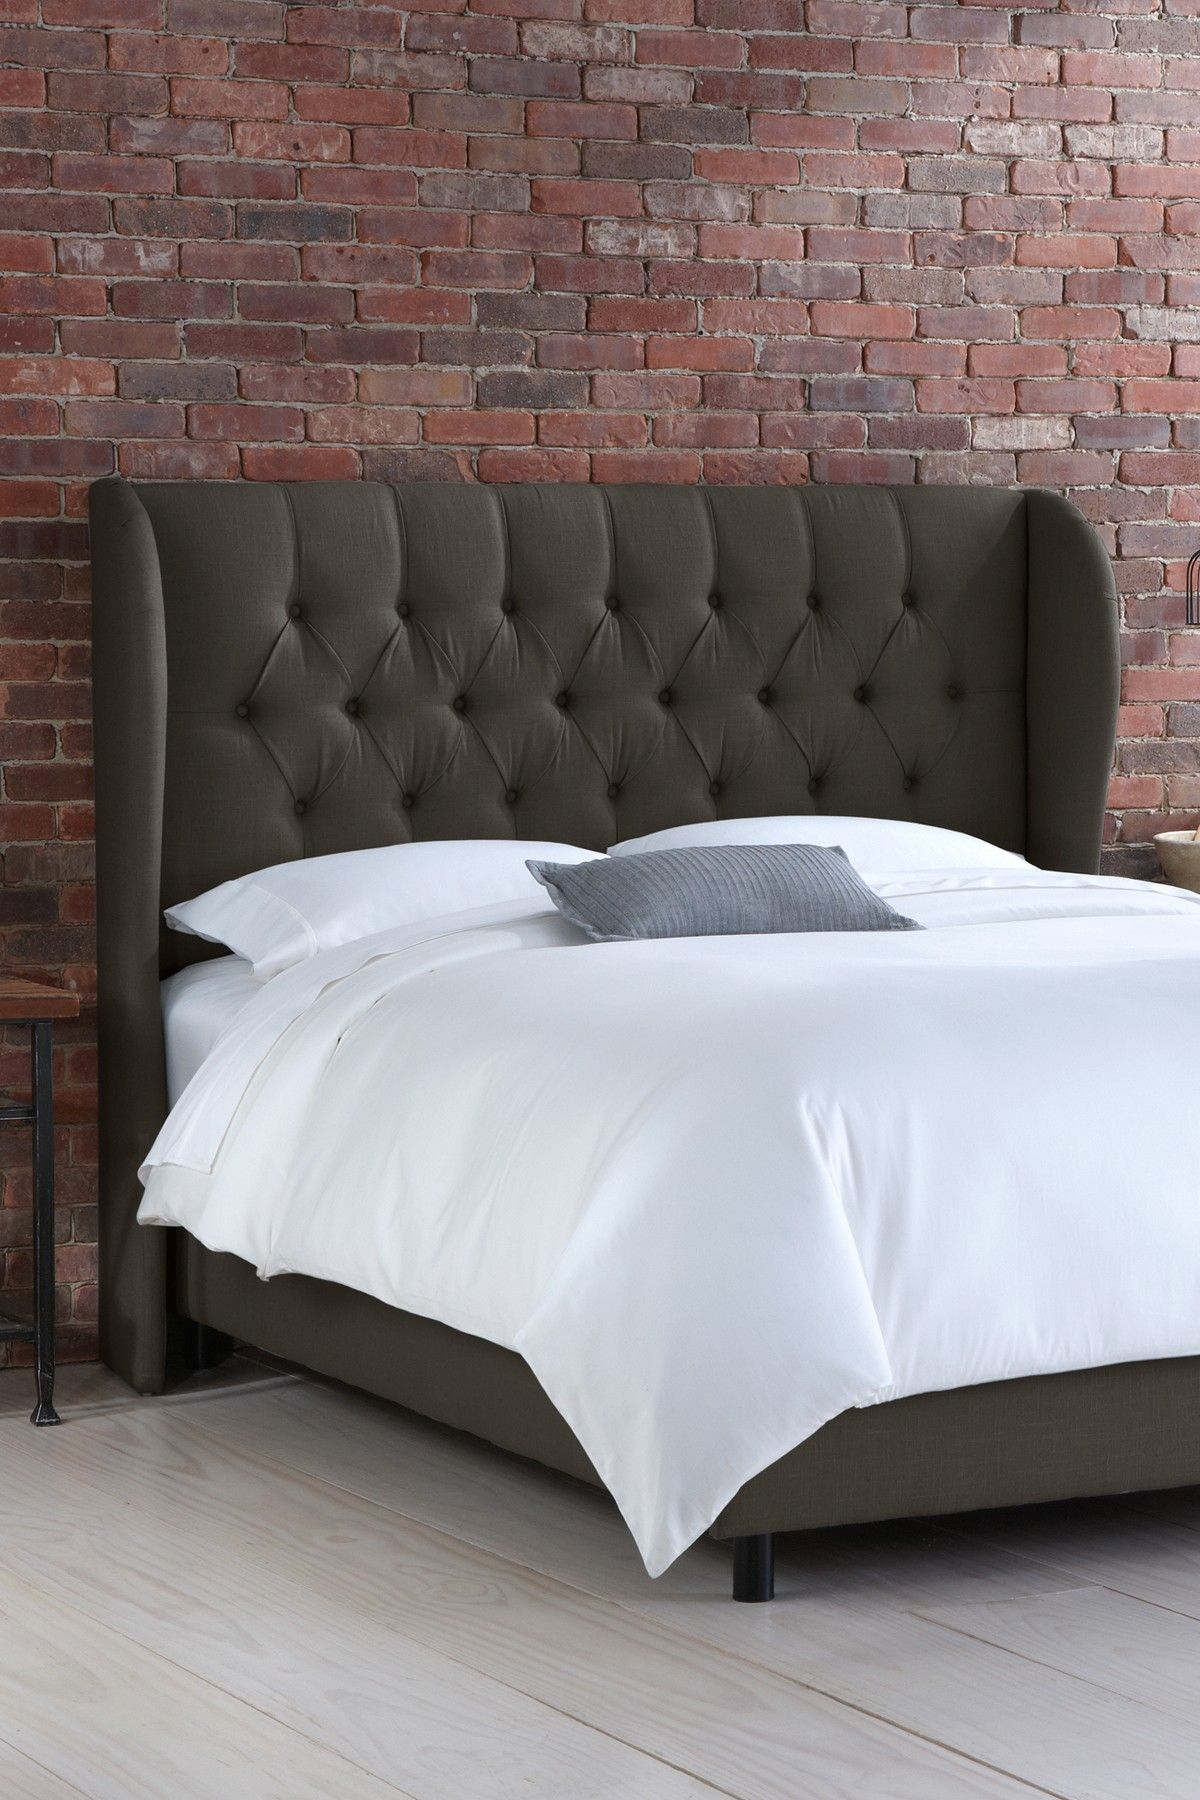 Tufted Wingback Bed - Linen Charcoal by Gold Coast | Wingback Bed ...